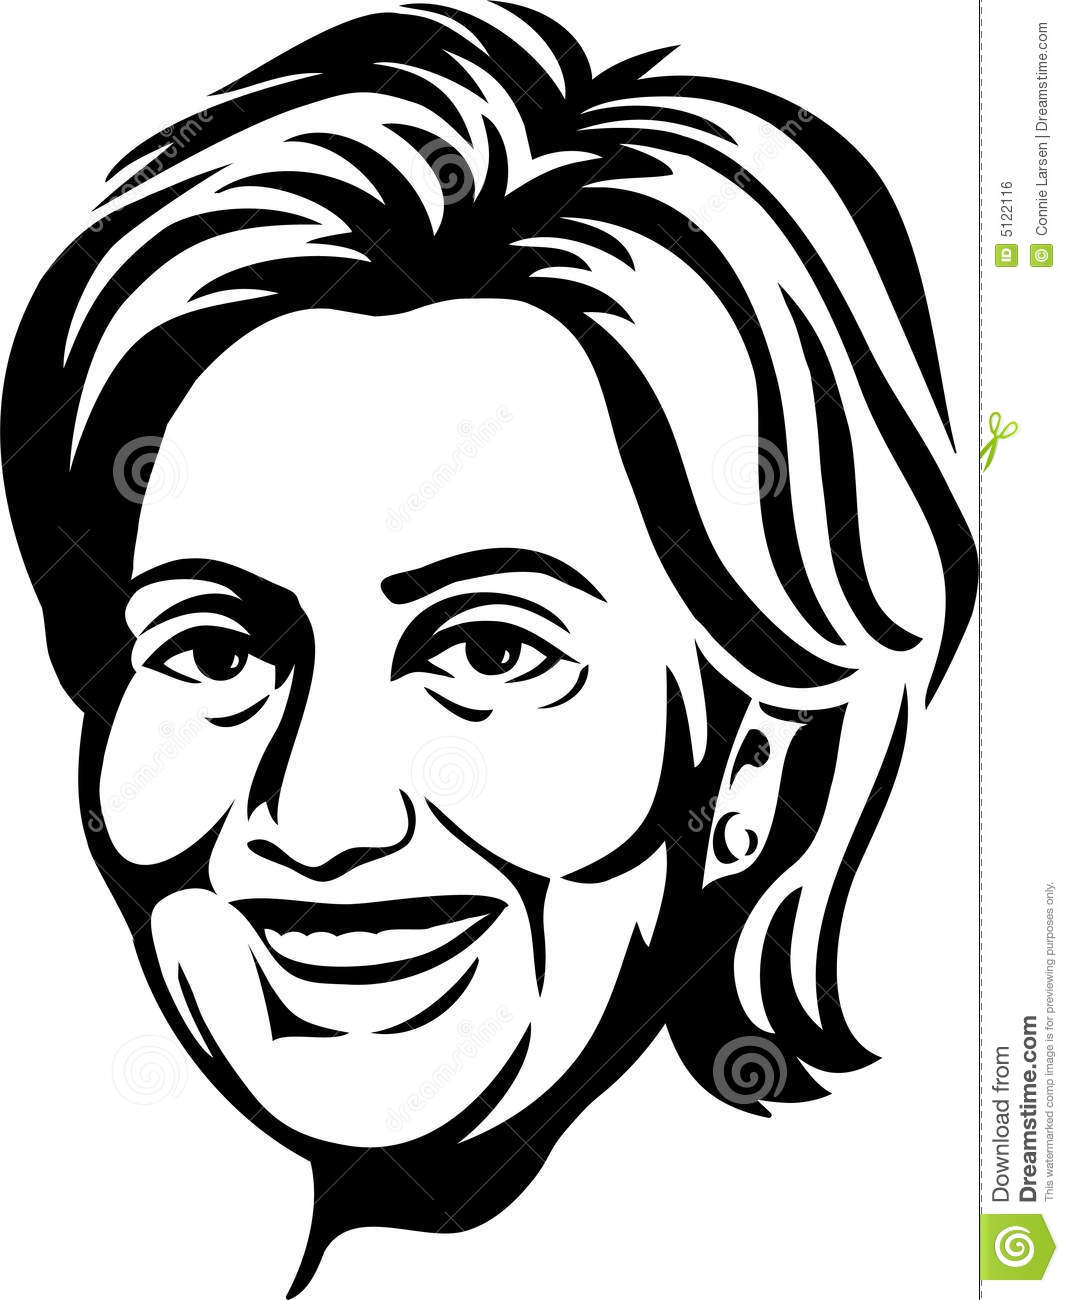 Clipart hillary clinton vector black and white stock Hillary Clinton Sketch at PaintingValley.com | Explore collection of ... vector black and white stock